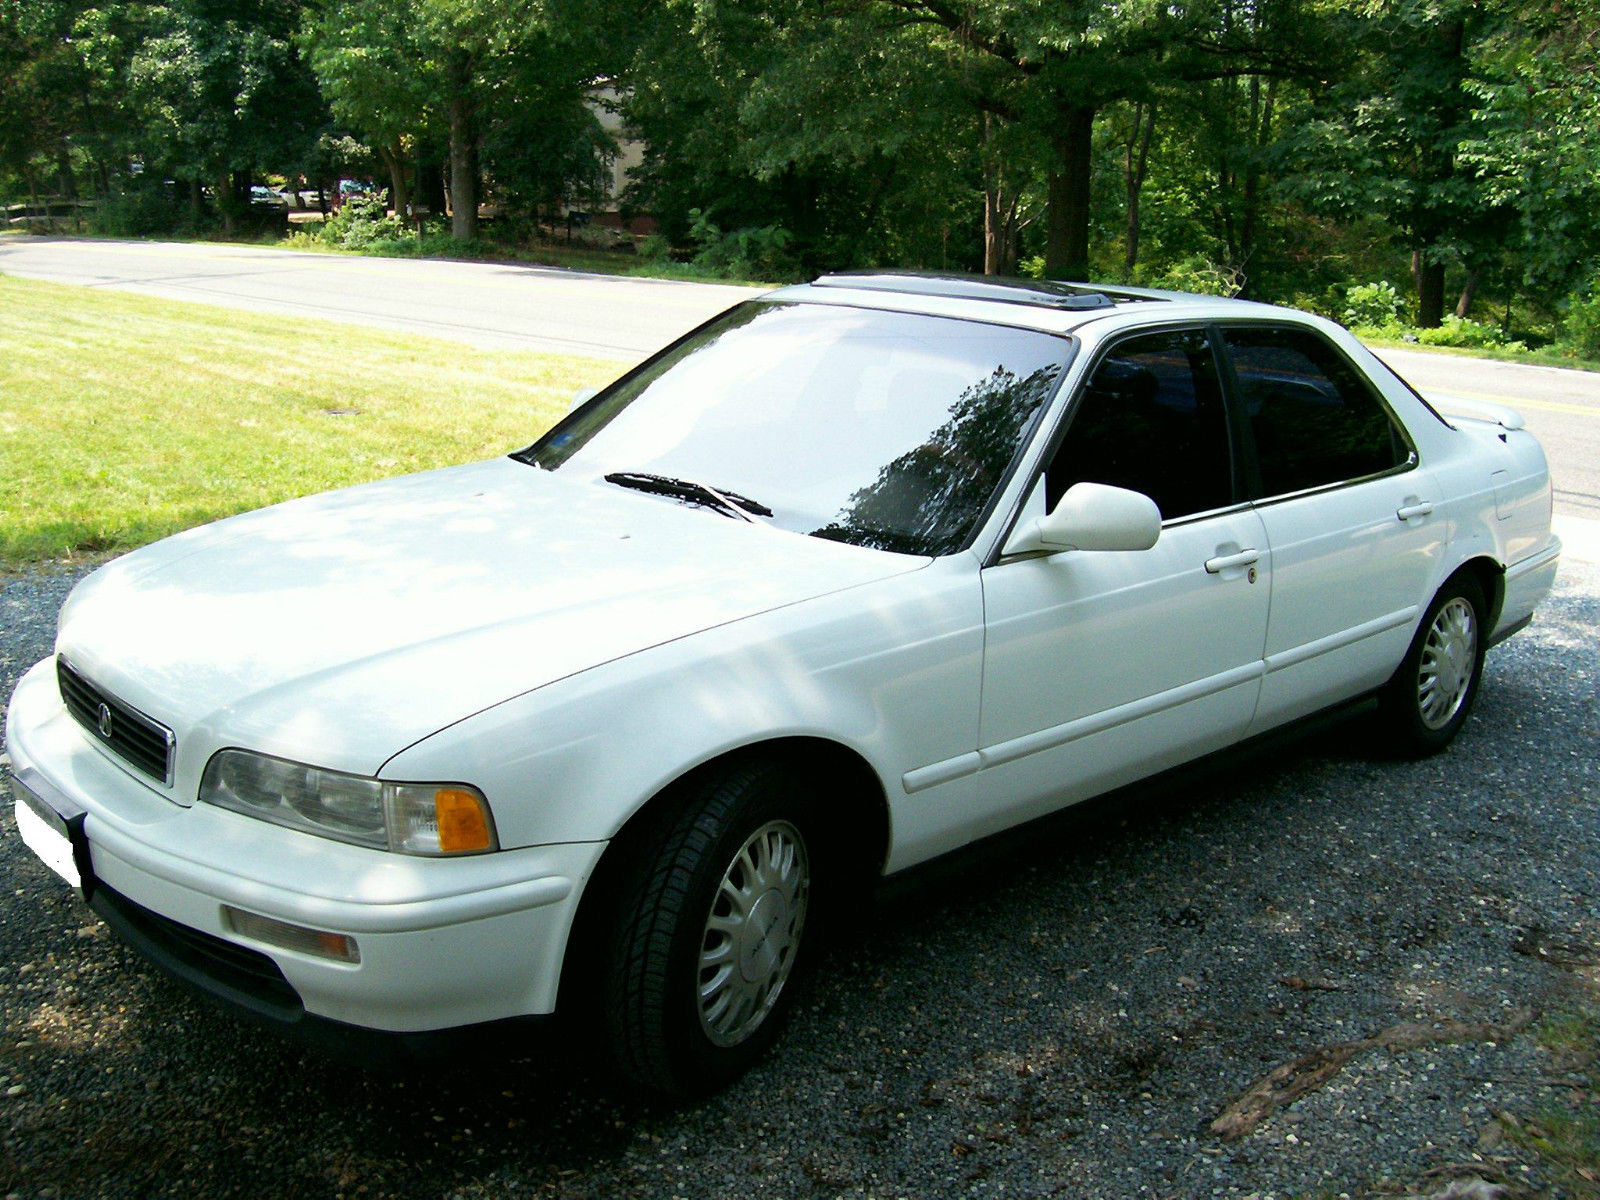 Acura Legend L Sedan BOSE L V White Tan - 1994 acura legend for sale